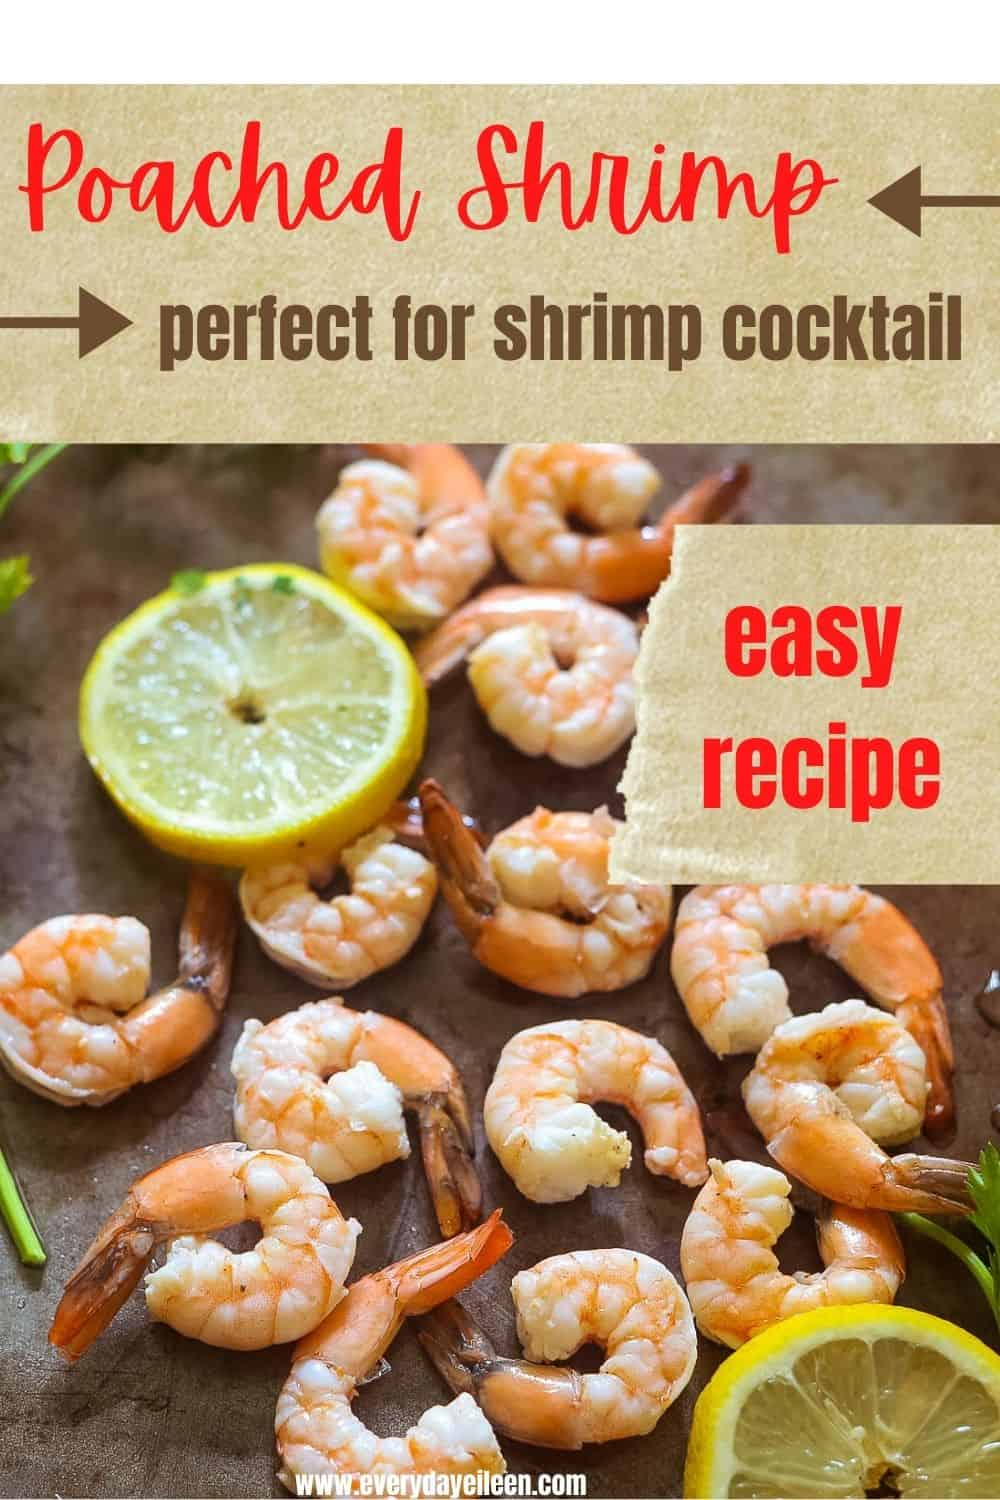 The Best Poached Shrimp Recipe is delicious and easy to make. No need to buy pricey shrimp platters. Make your own in under 30 minutes. Perfect for parties, tailgates, Holiday gatherings! #poachedshrimp #healthyshrimp #easyshrimp #everydayeileen #boiledshrimp